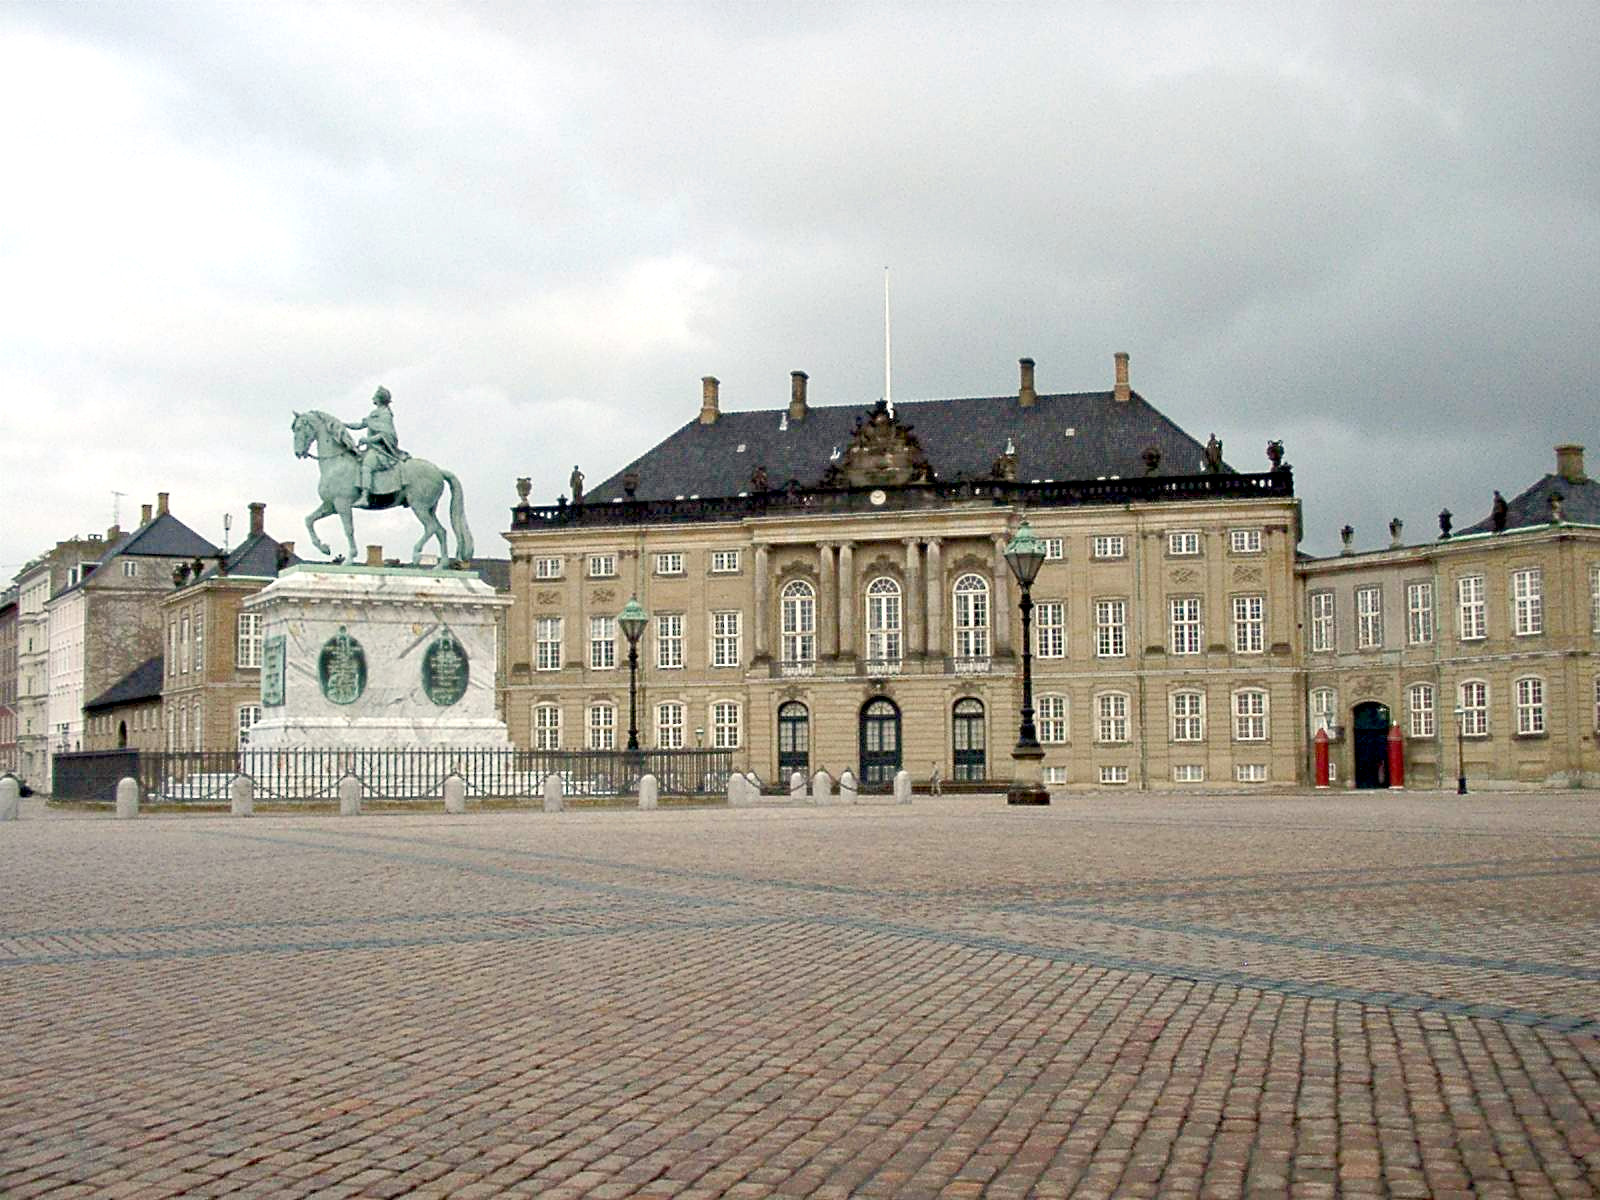 Princess Margrethe's birthplace: Frederik VIII's Palace at Amalienborg in Copenhagen, Denmark. It consists of four identical classical palace façades with rococo interiors around an octagonal courtyard (Amalienborg Slotsplads); in the center of the square is a monumental equestrian statue of Amalienborg's founder, King Frederick V. Photo taken by Wolfgang Hägele on November 25, 2003.